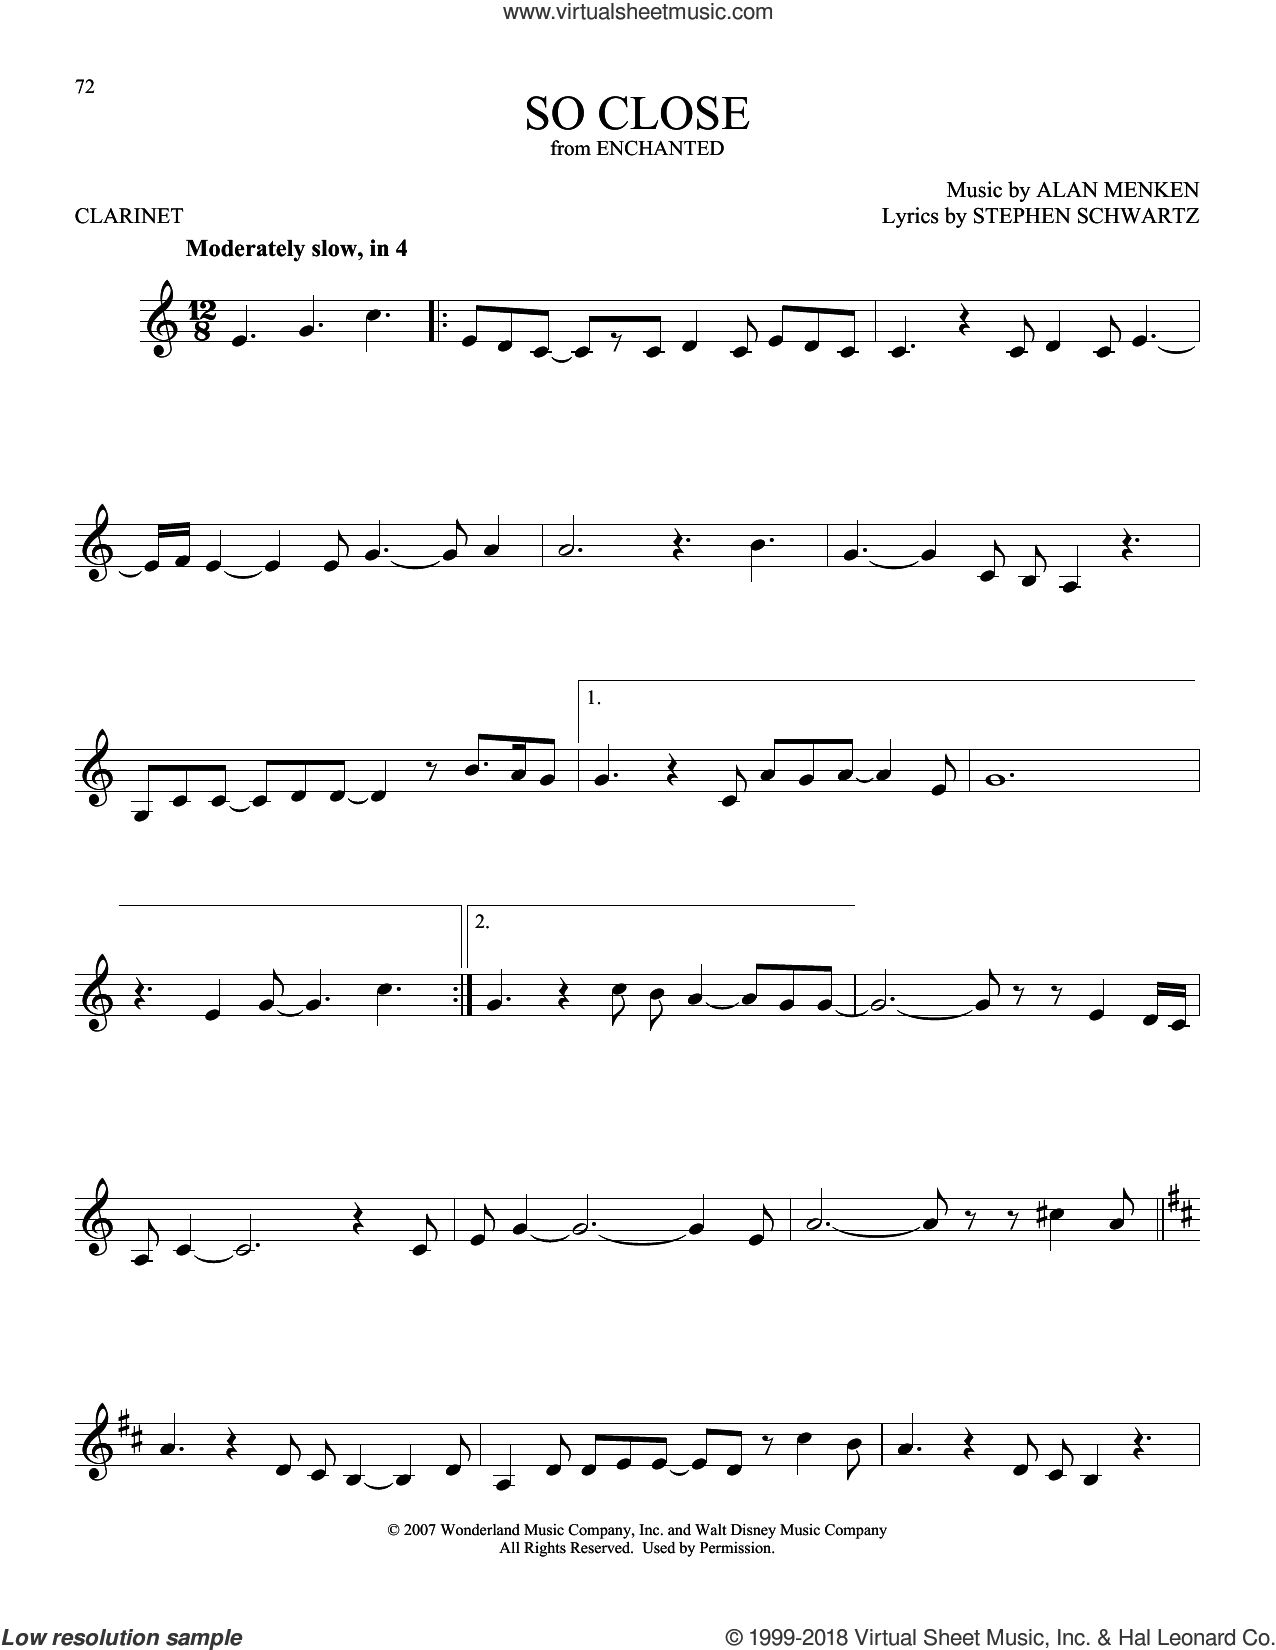 So Close sheet music for clarinet solo by Alan Menken and Stephen Schwartz, intermediate skill level